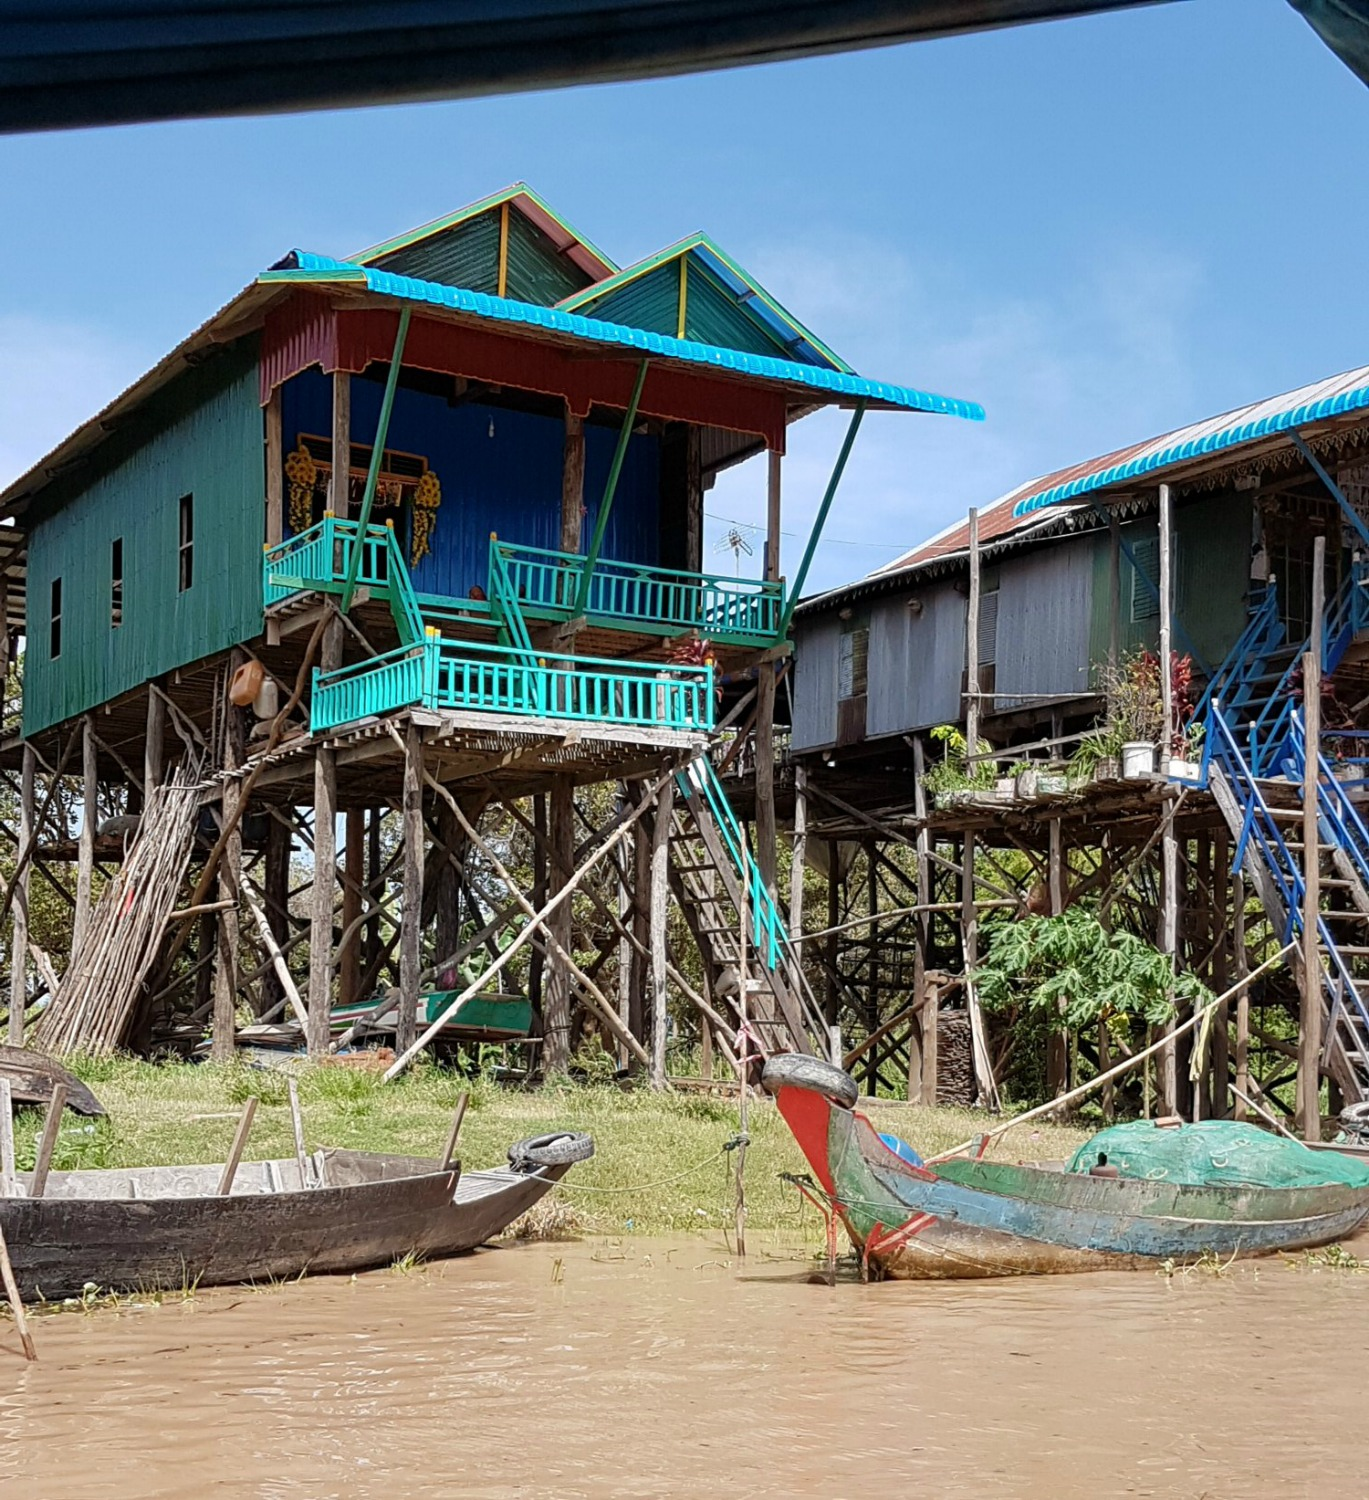 Bright turquoise stilt house by Tonle Sap - 12 reasons to visit Cambodia with kids